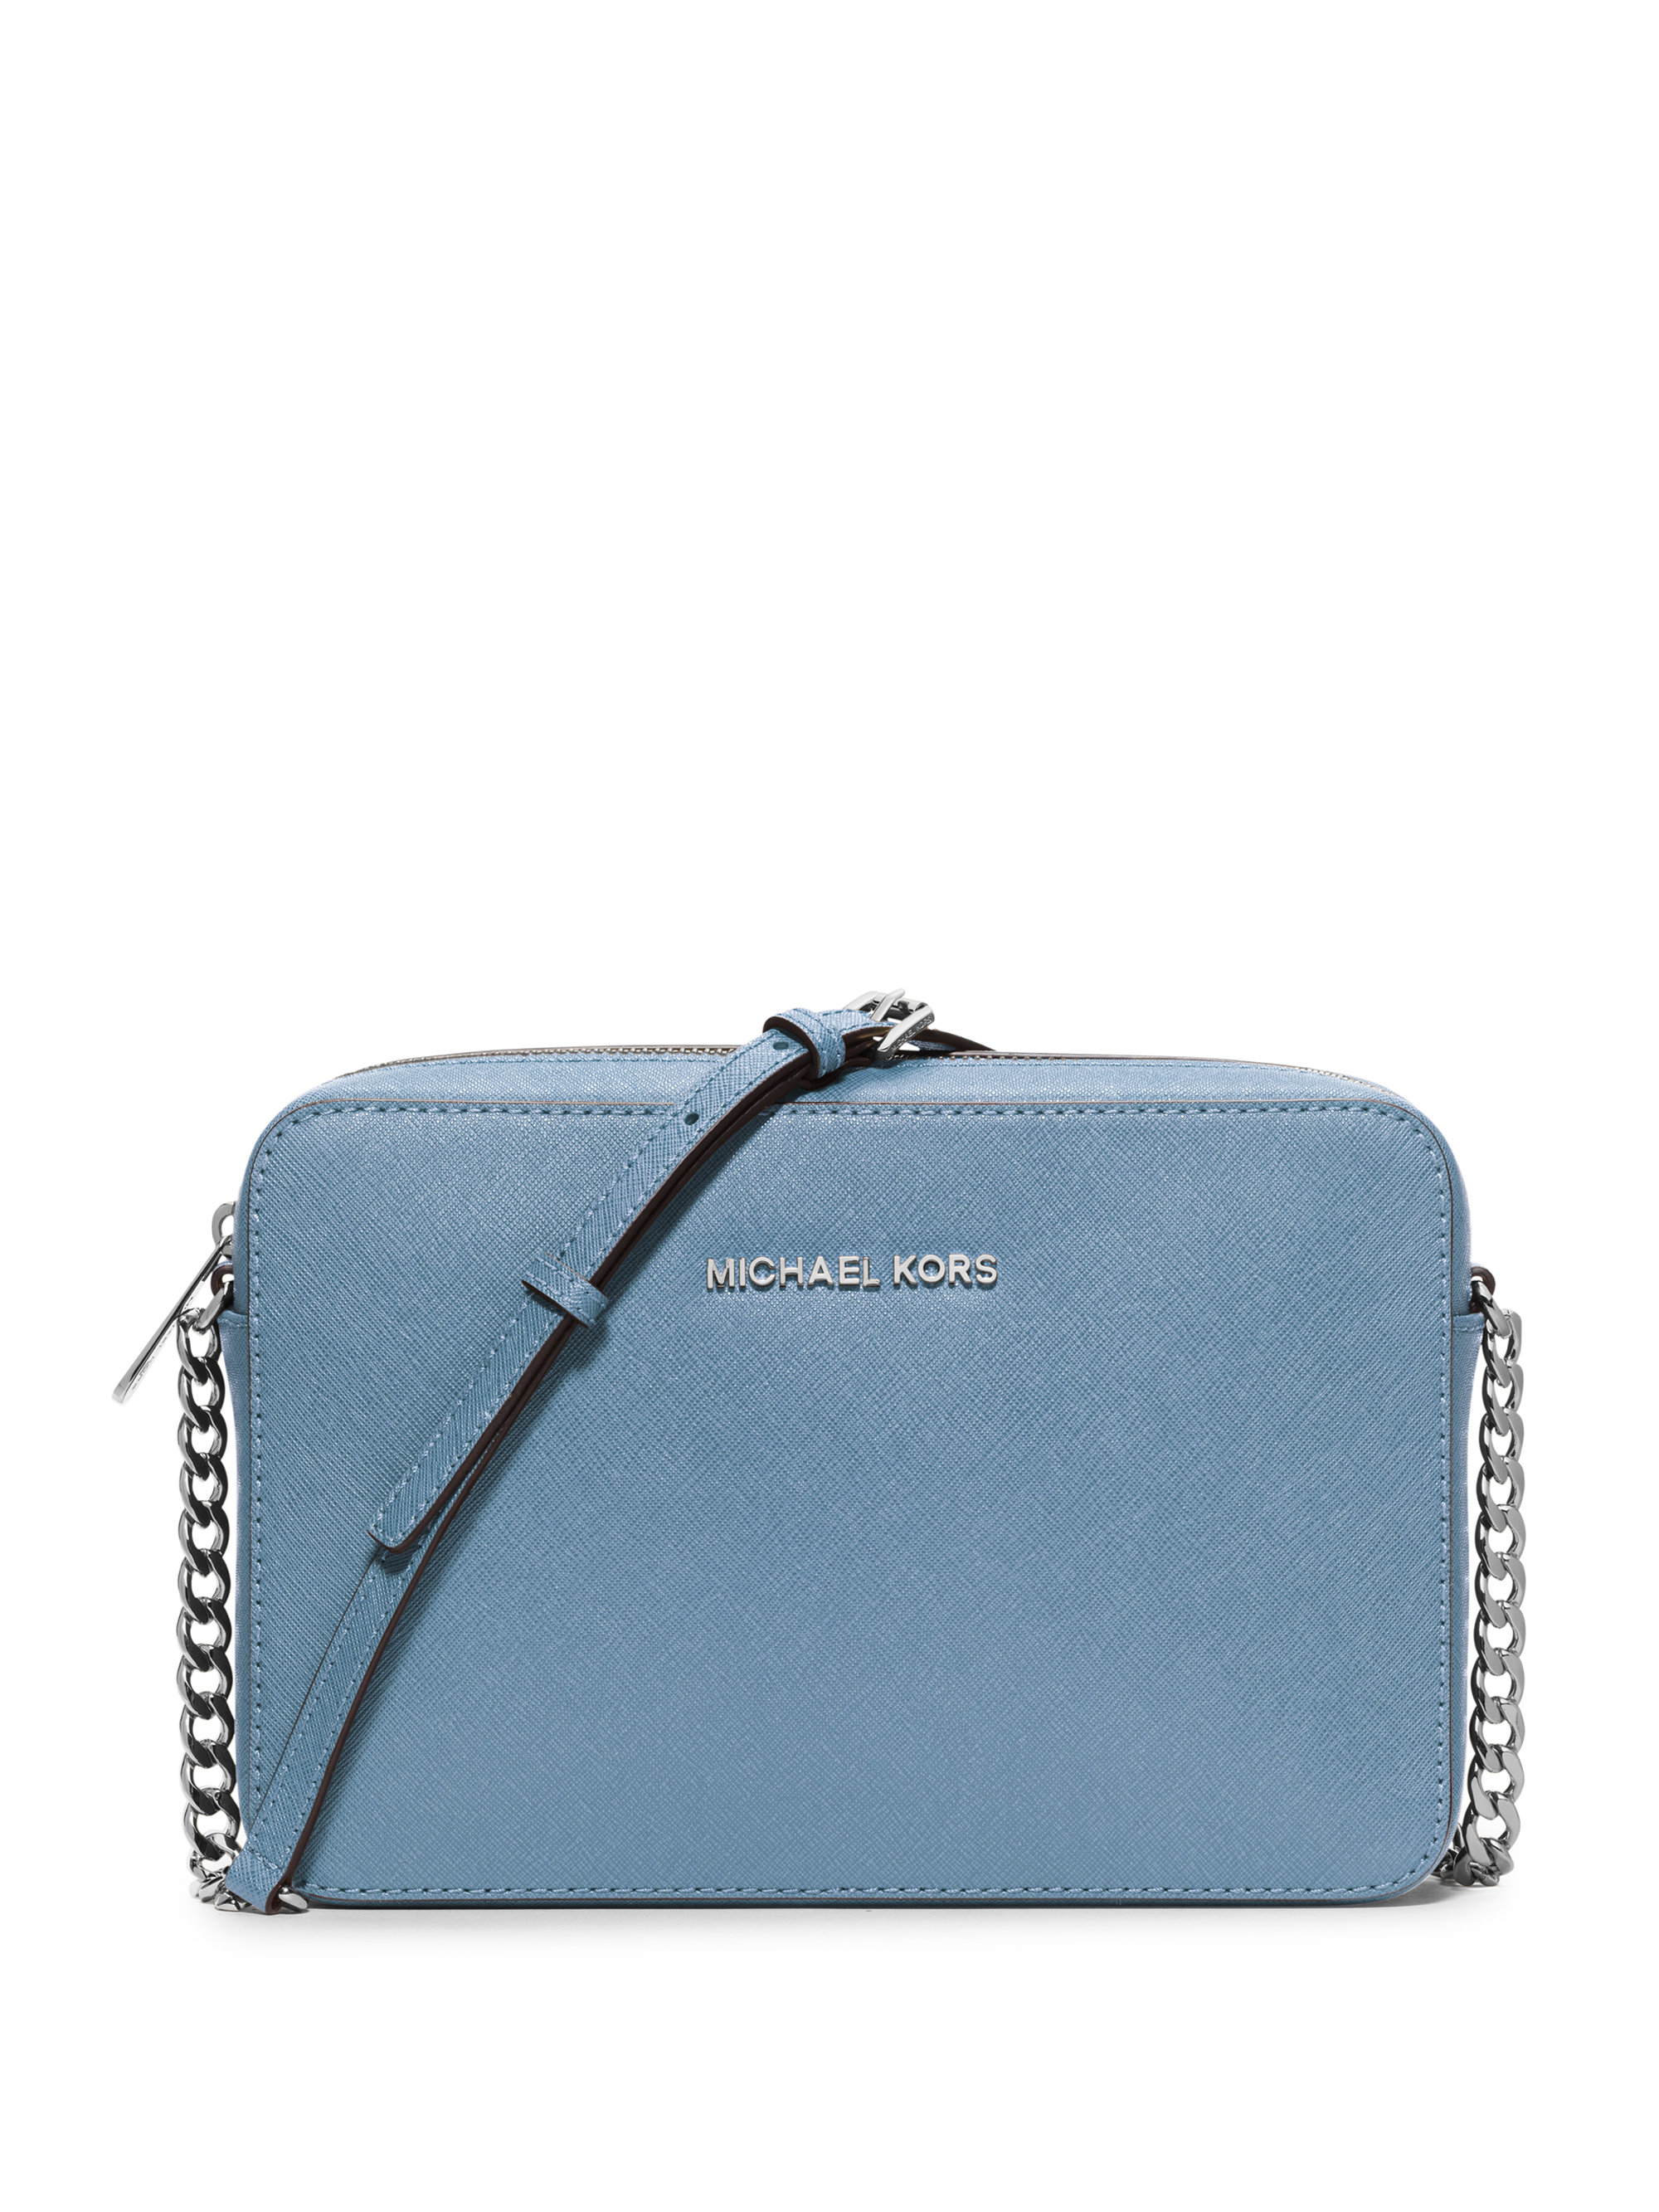 0ba6af545a0dd5 Michael Kors Jet Set Travel Large Leather Cross-Body Bag in Blue - Lyst